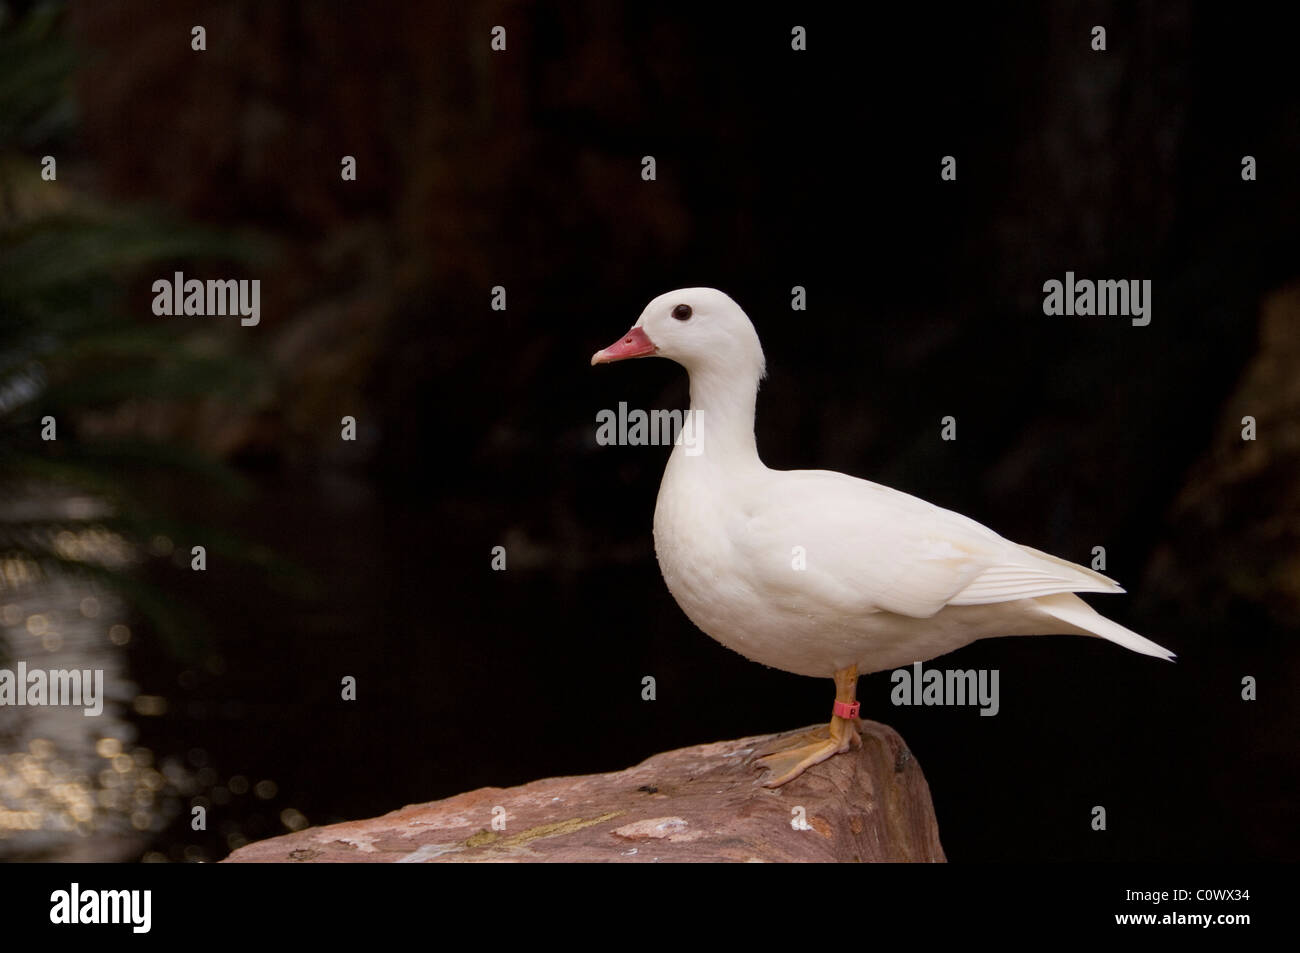 White Duck Standing On Edge of Rock - Stock Image